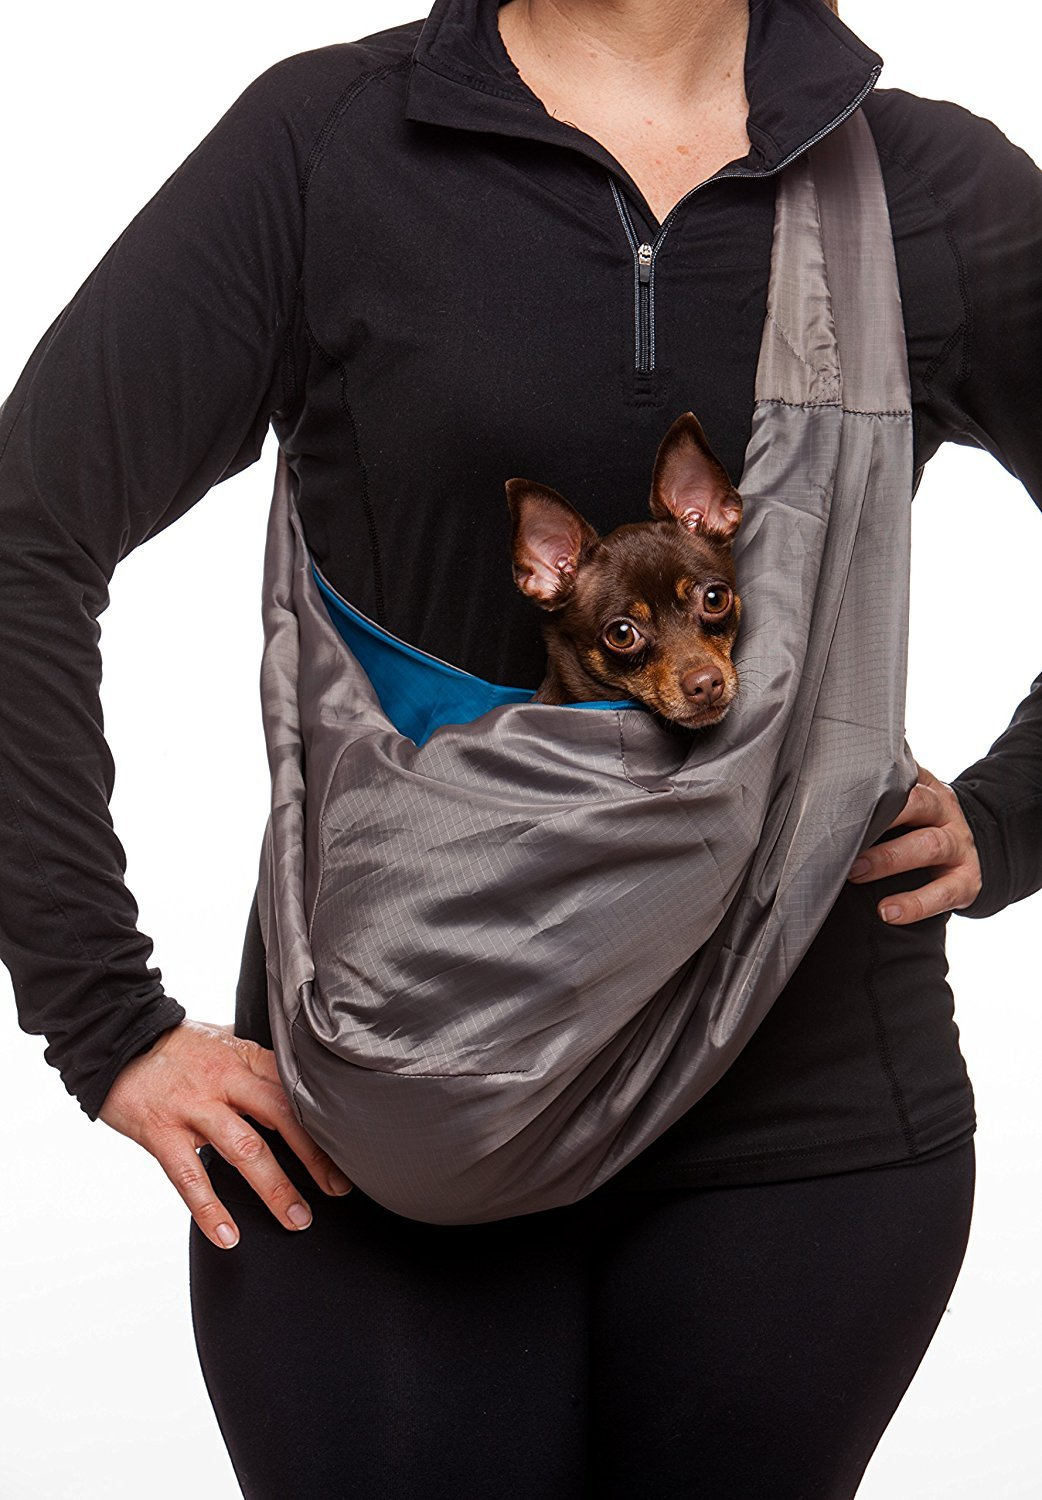 FUR-EEZ Ultra PORTABLE Hands-Free Pet Sling Carrier with Attached Small Pouch + Collar Latch and Loop for Dogs/Cats/Bunny Under 12 lbs